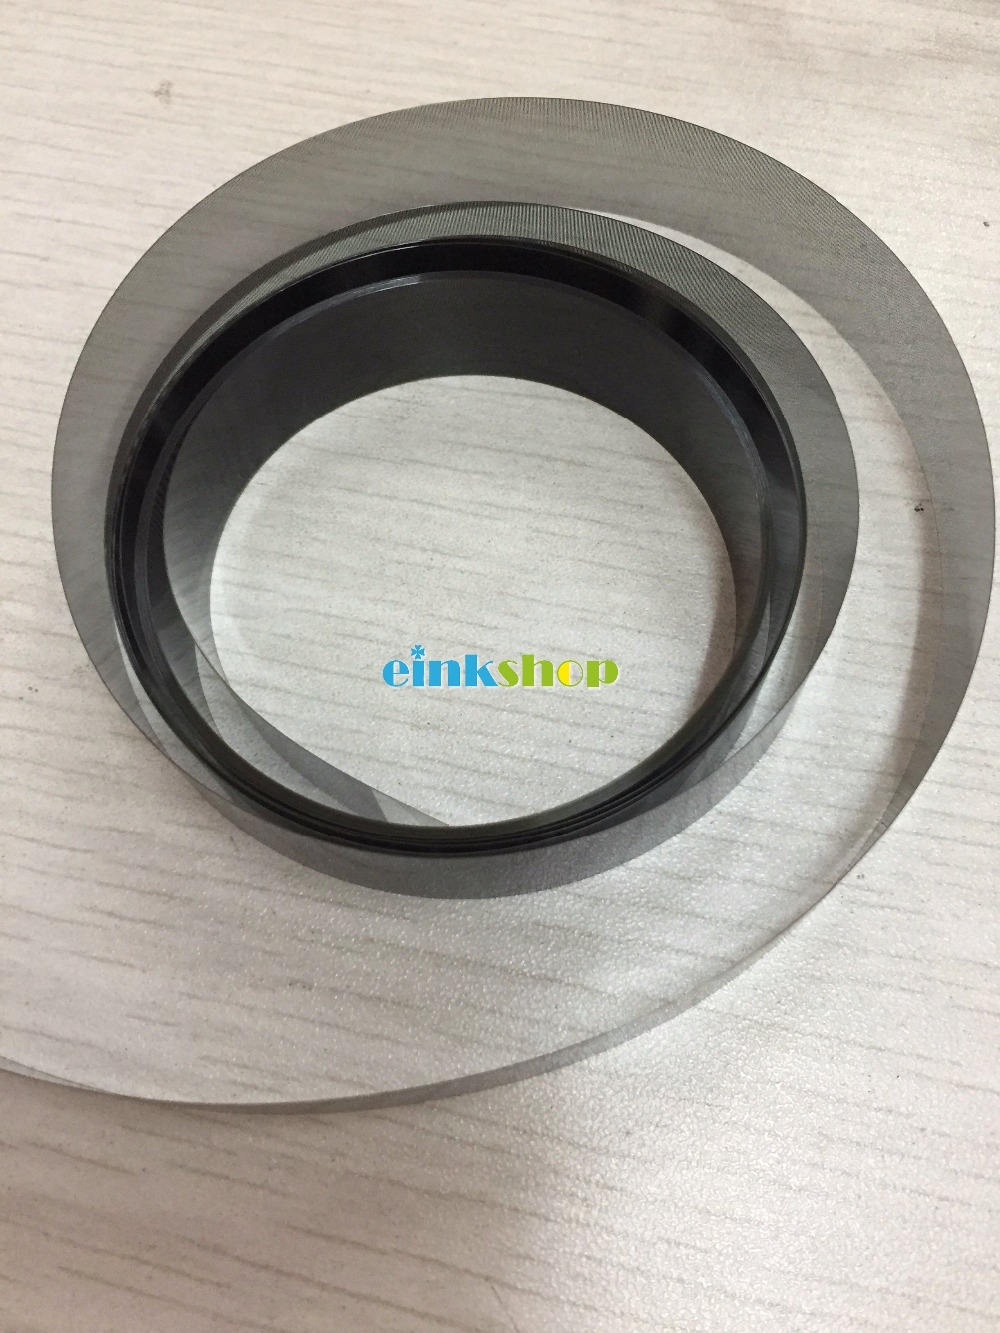 einkshop Encoder Strip For Roland SP VP XC SJ 540 640 740 DX4 DX5 DX7 Printhead 180dpi 15mm*4500mm 180Lpi encoder strip roland printer paper receiver for roland sj fj sc 540 641 740 vp540 series printer